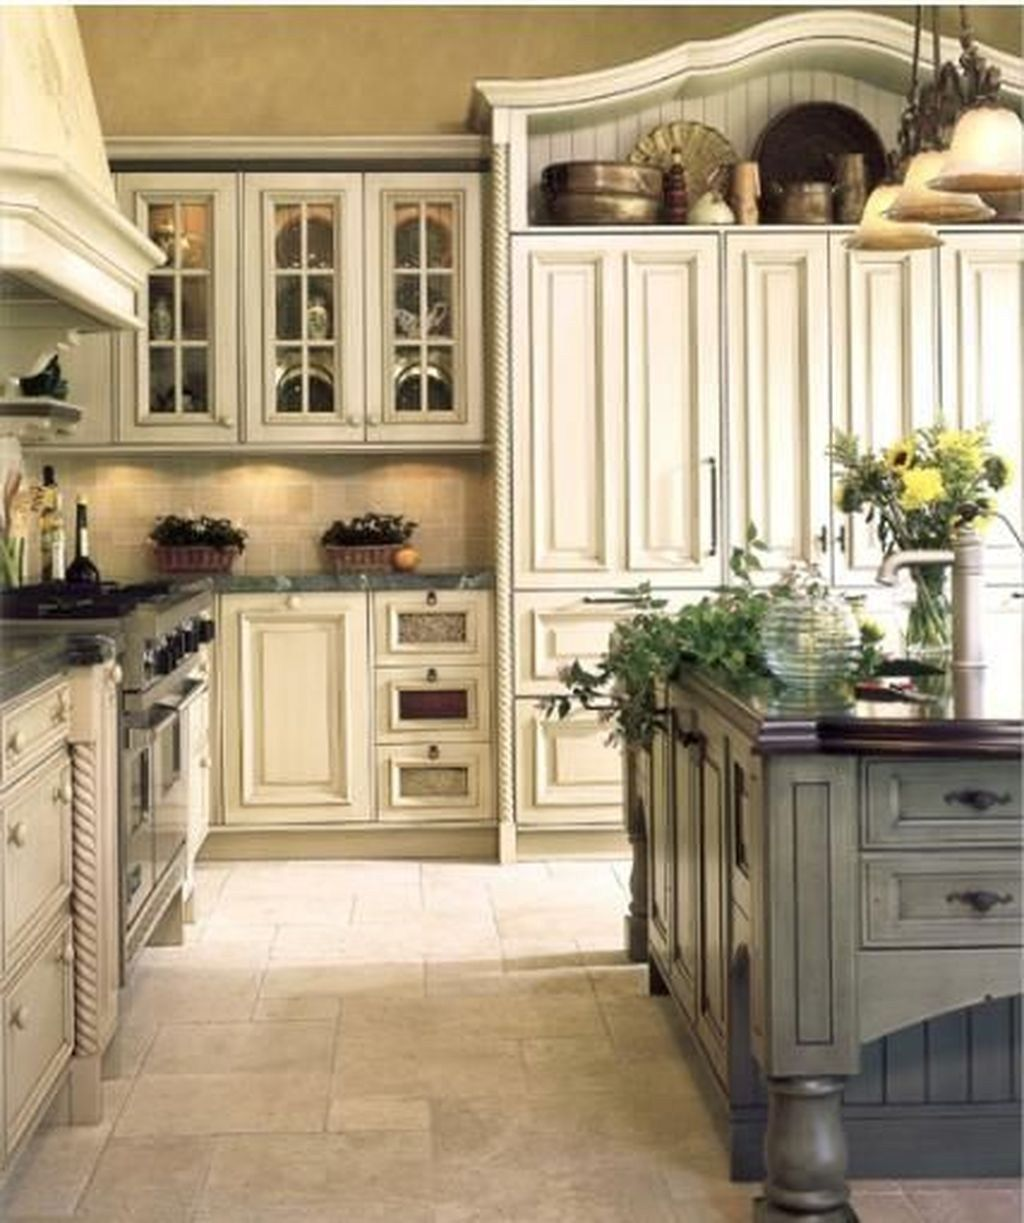 Country Style Kitchens 2013 Decorating Ideas: 36 Simply French Country Home Decor Ideas